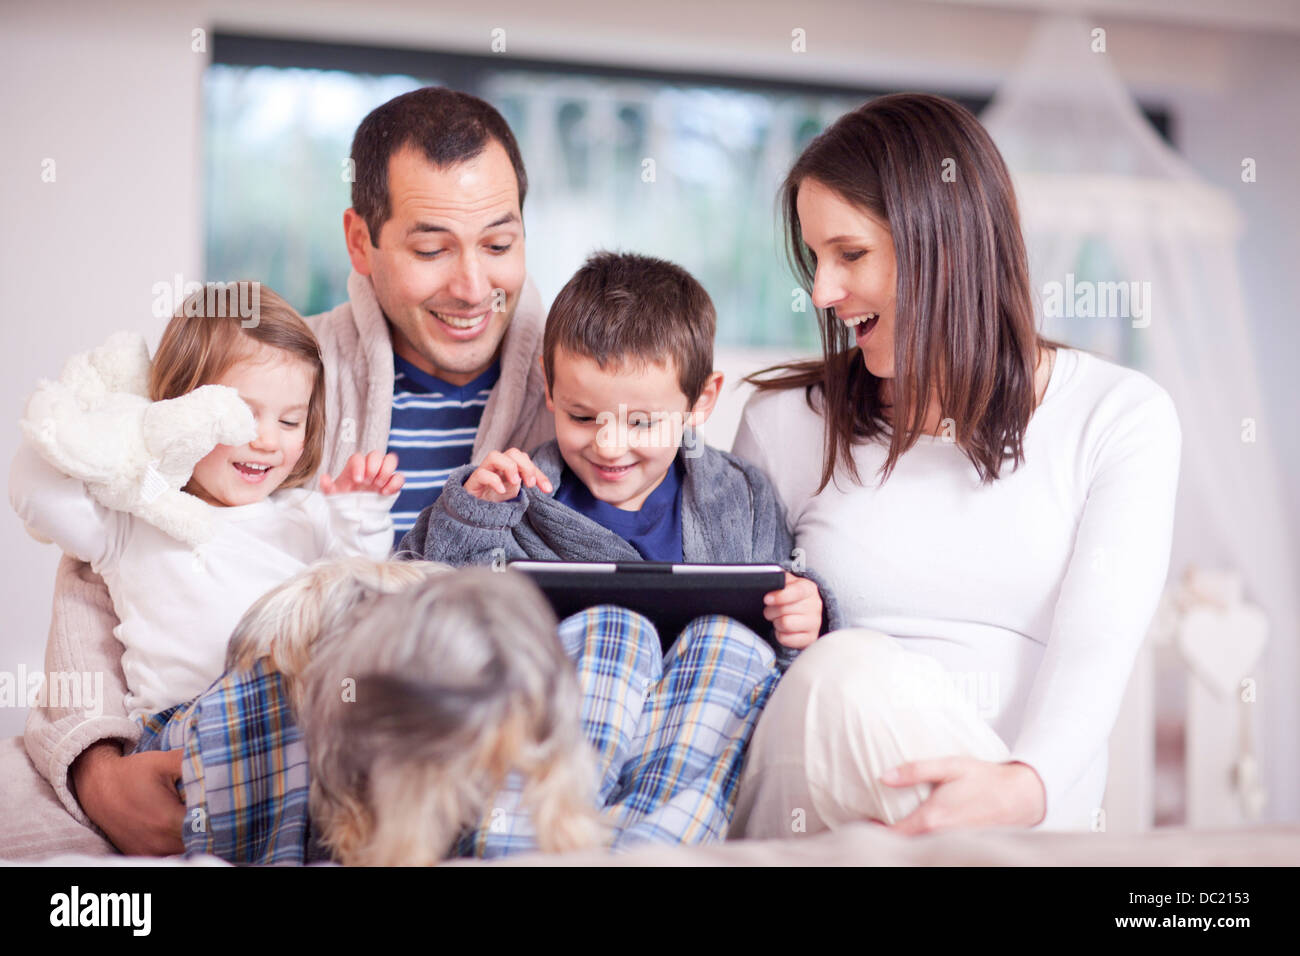 Les parents, les deux enfants et le chien looking at digital tablet Photo Stock